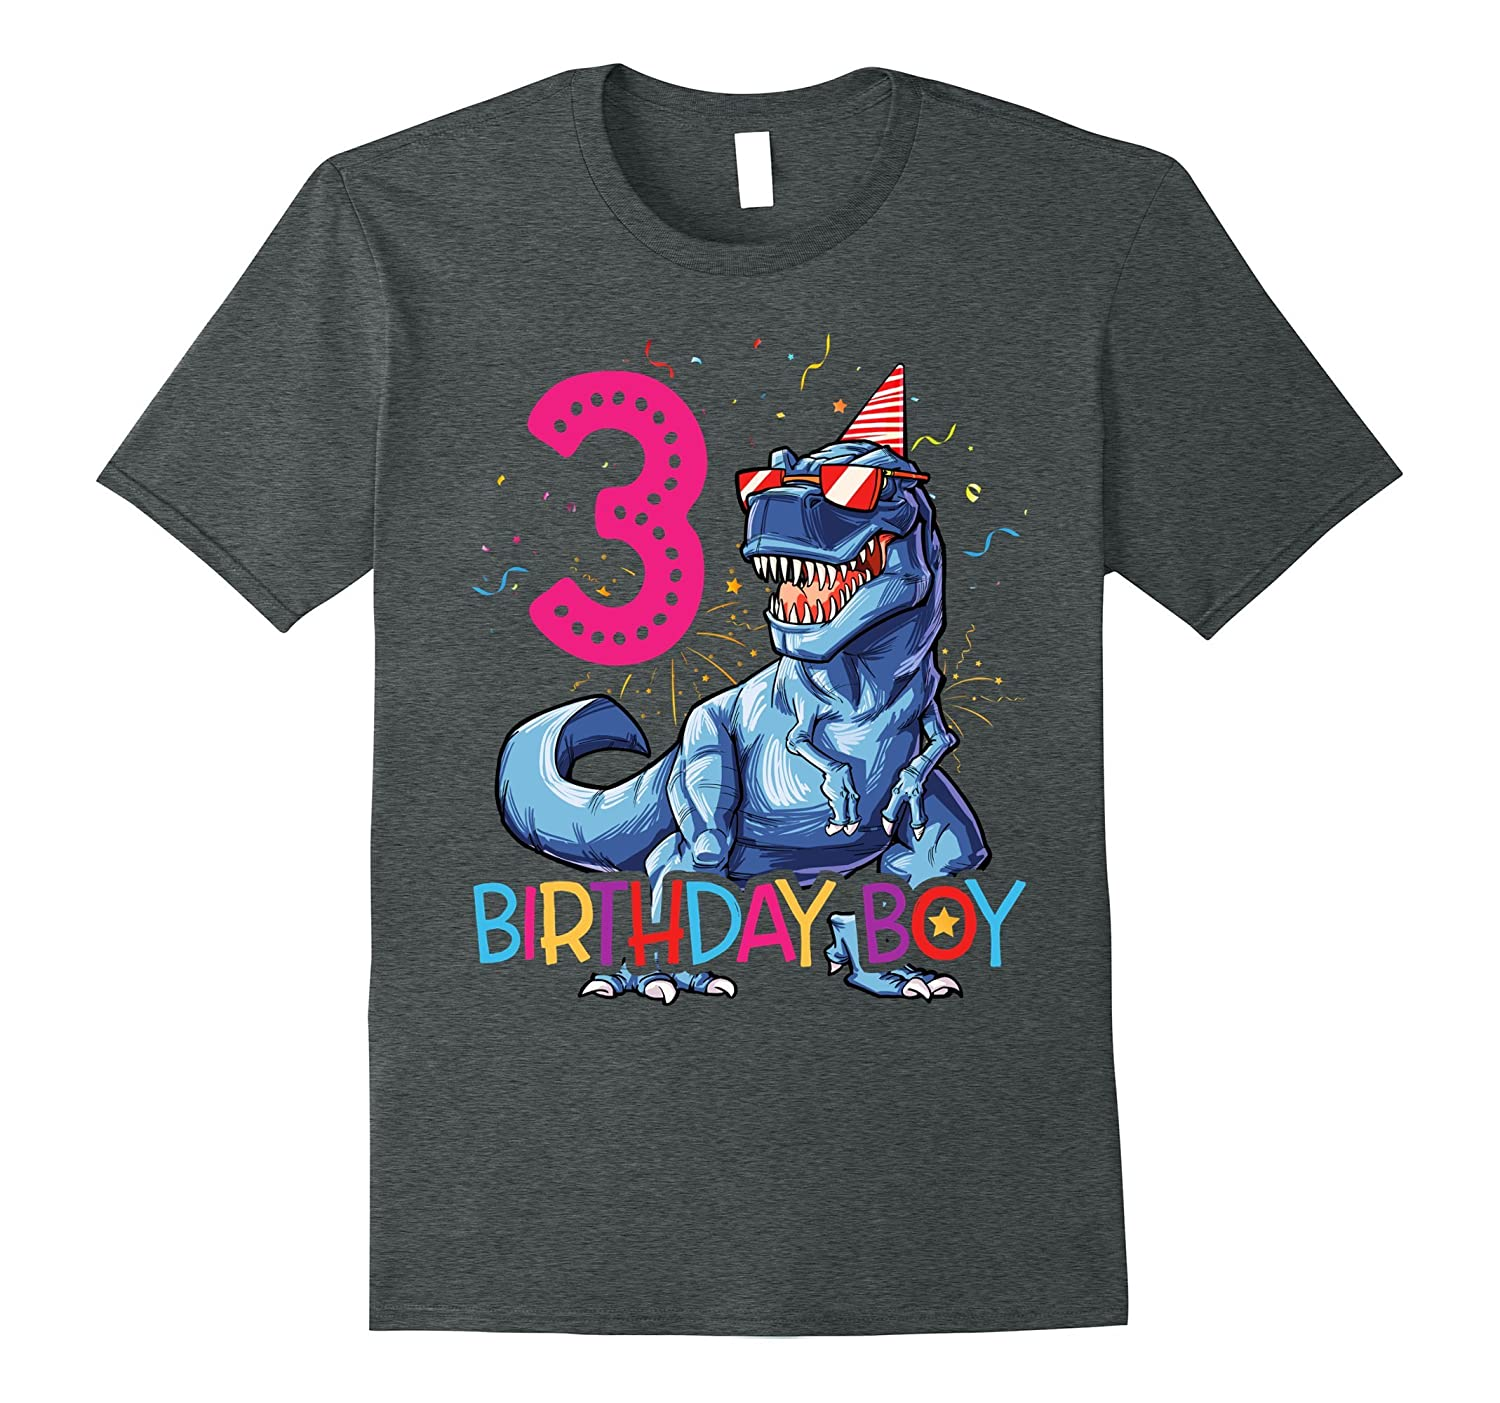 Dinosaur T Rex 3 Year Old Shirt Kids 3rd Birthday ANZ